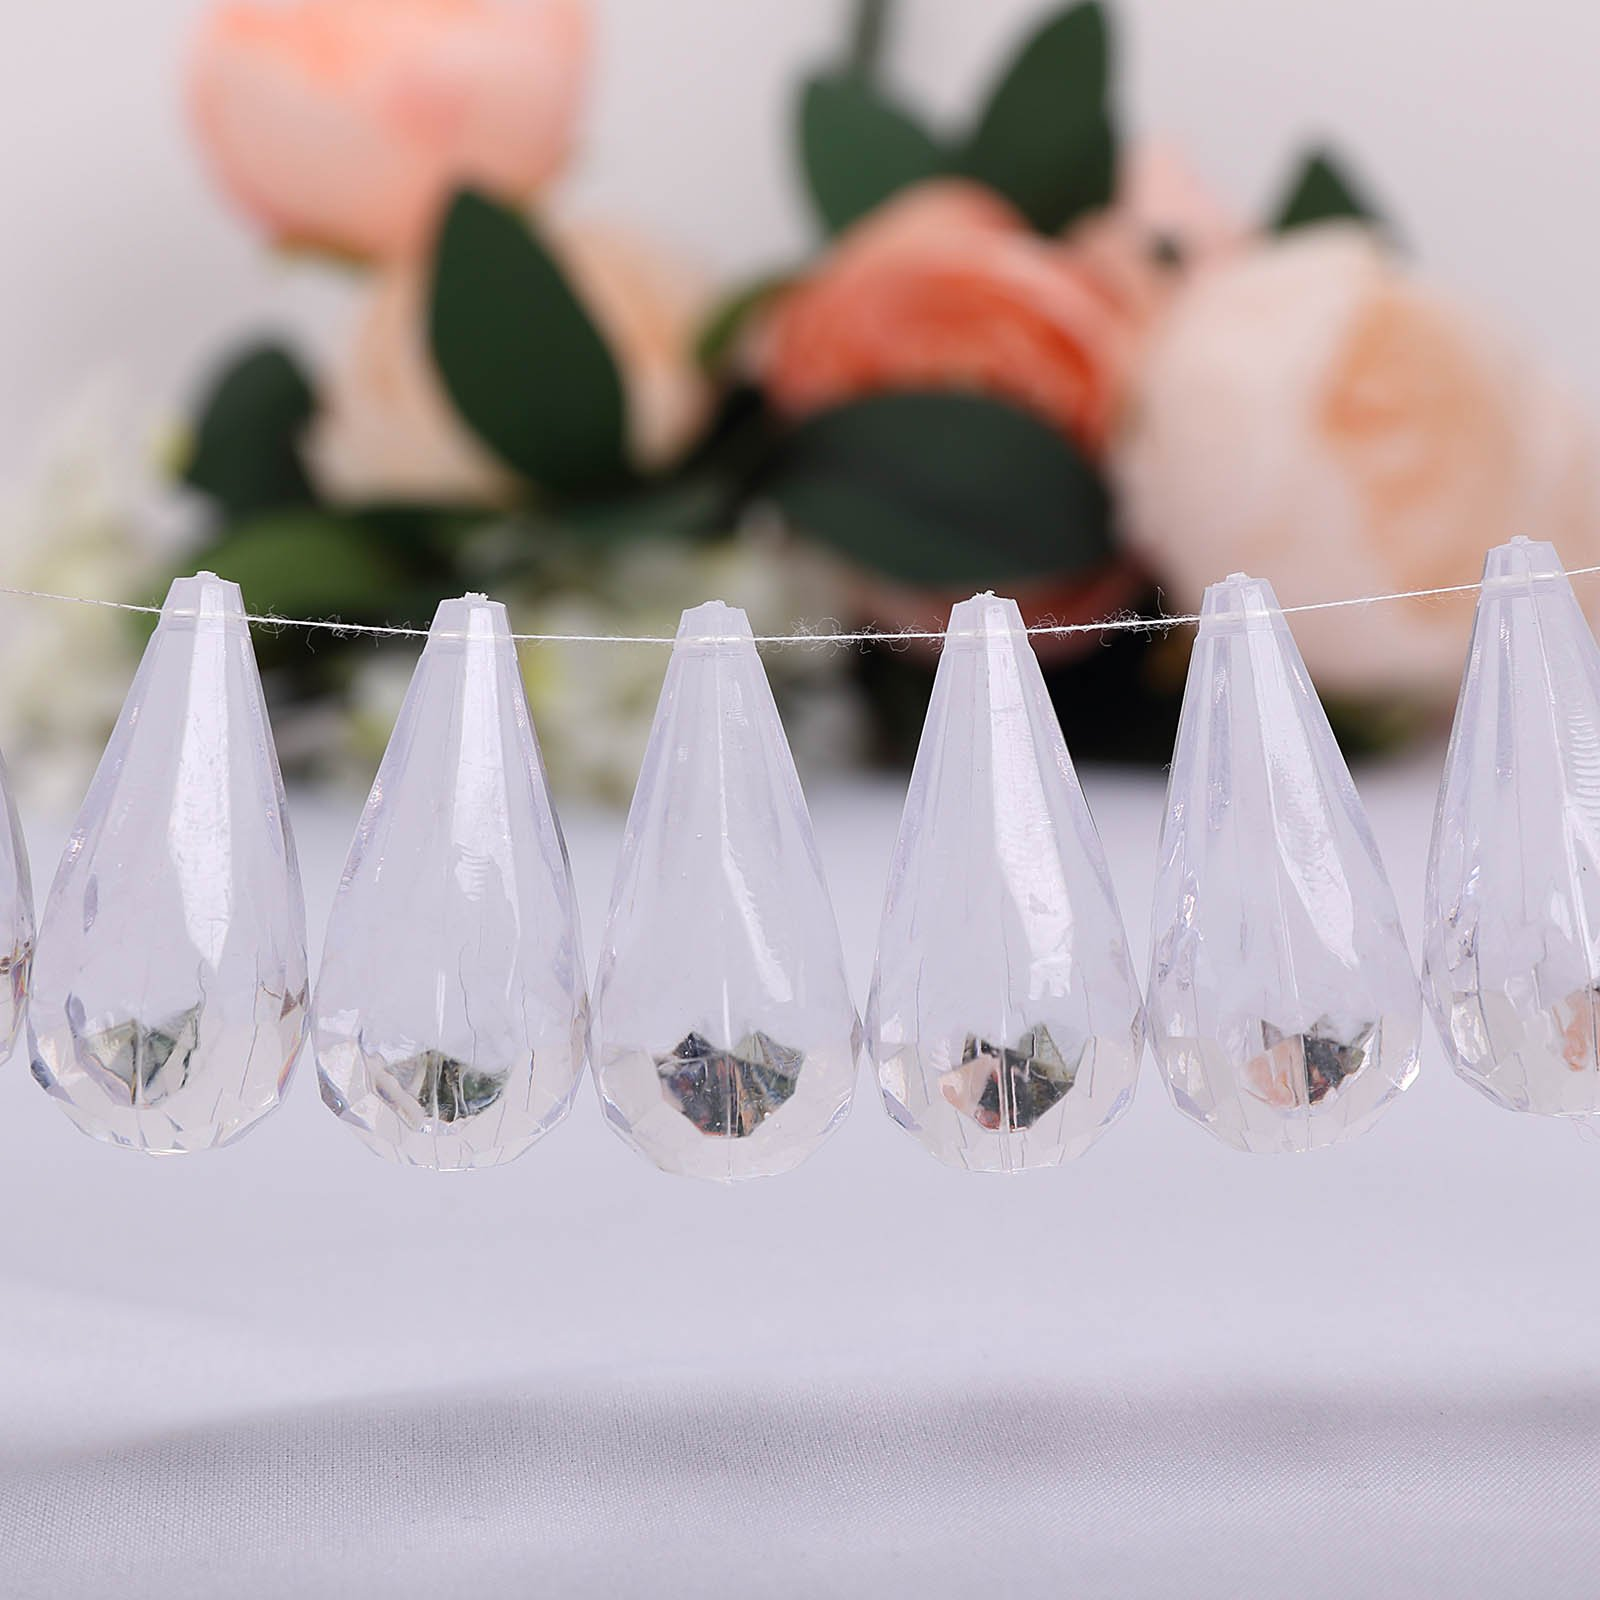 Efavormart Angel's Tears 50 pcs Acrylic Diamond Clear